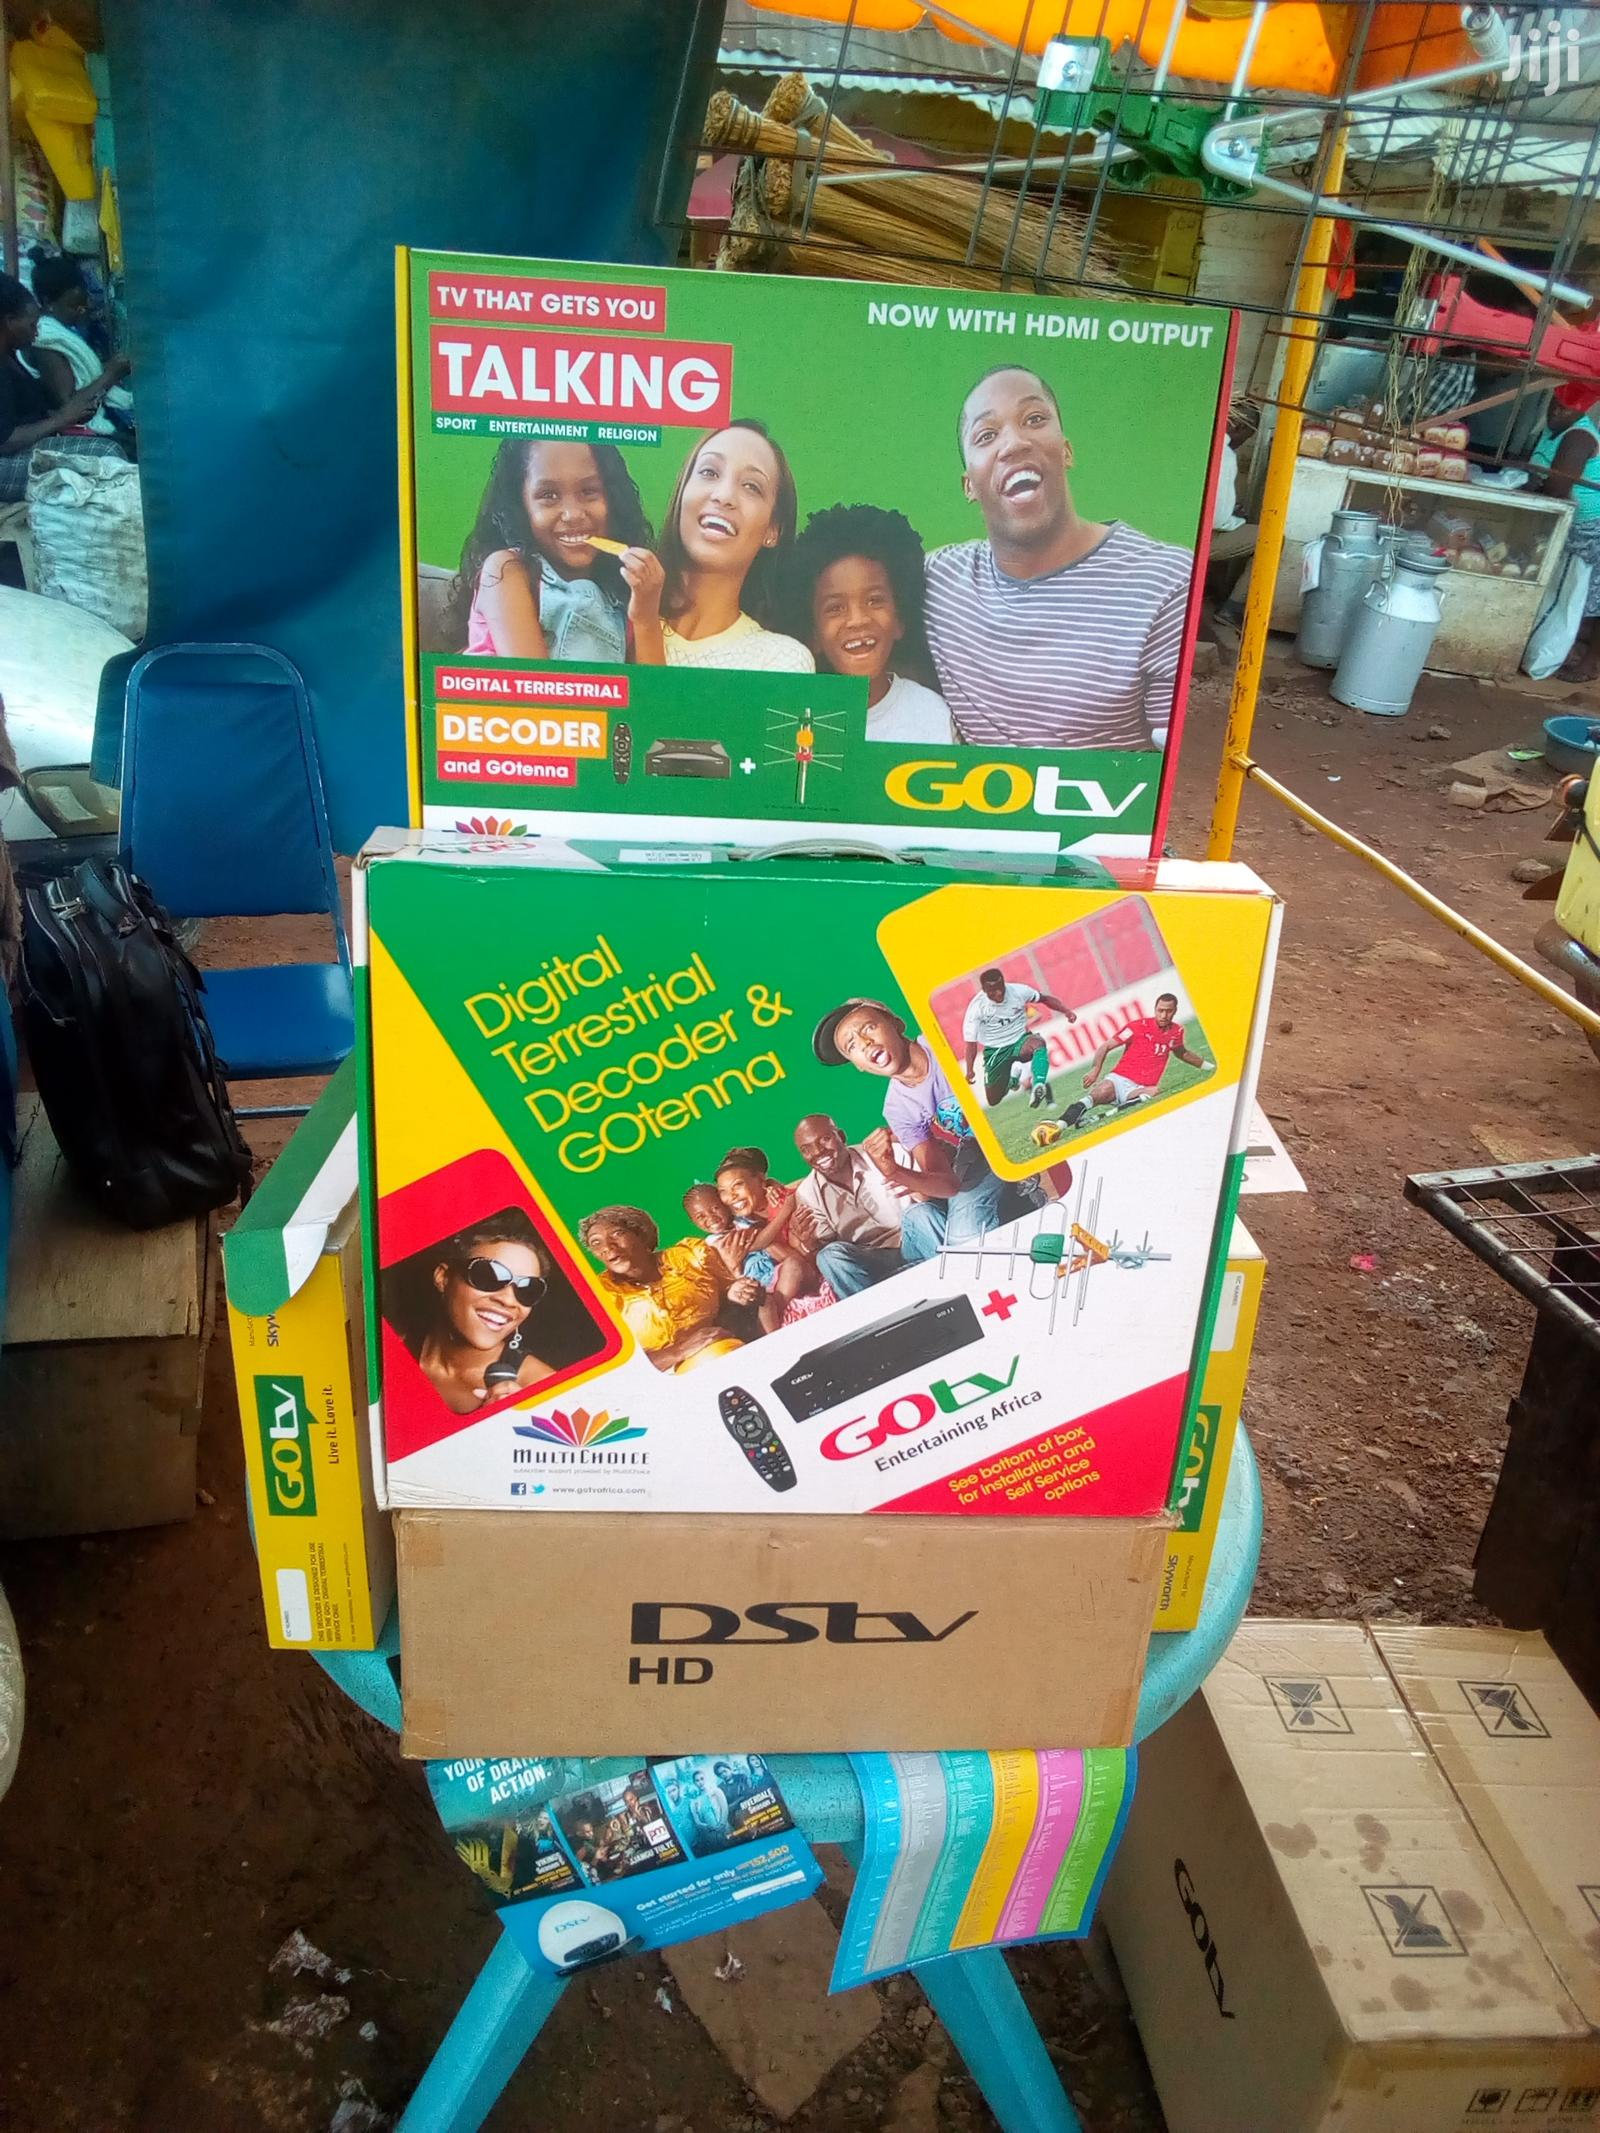 Gotv And DSTV And Free To Air Decoders